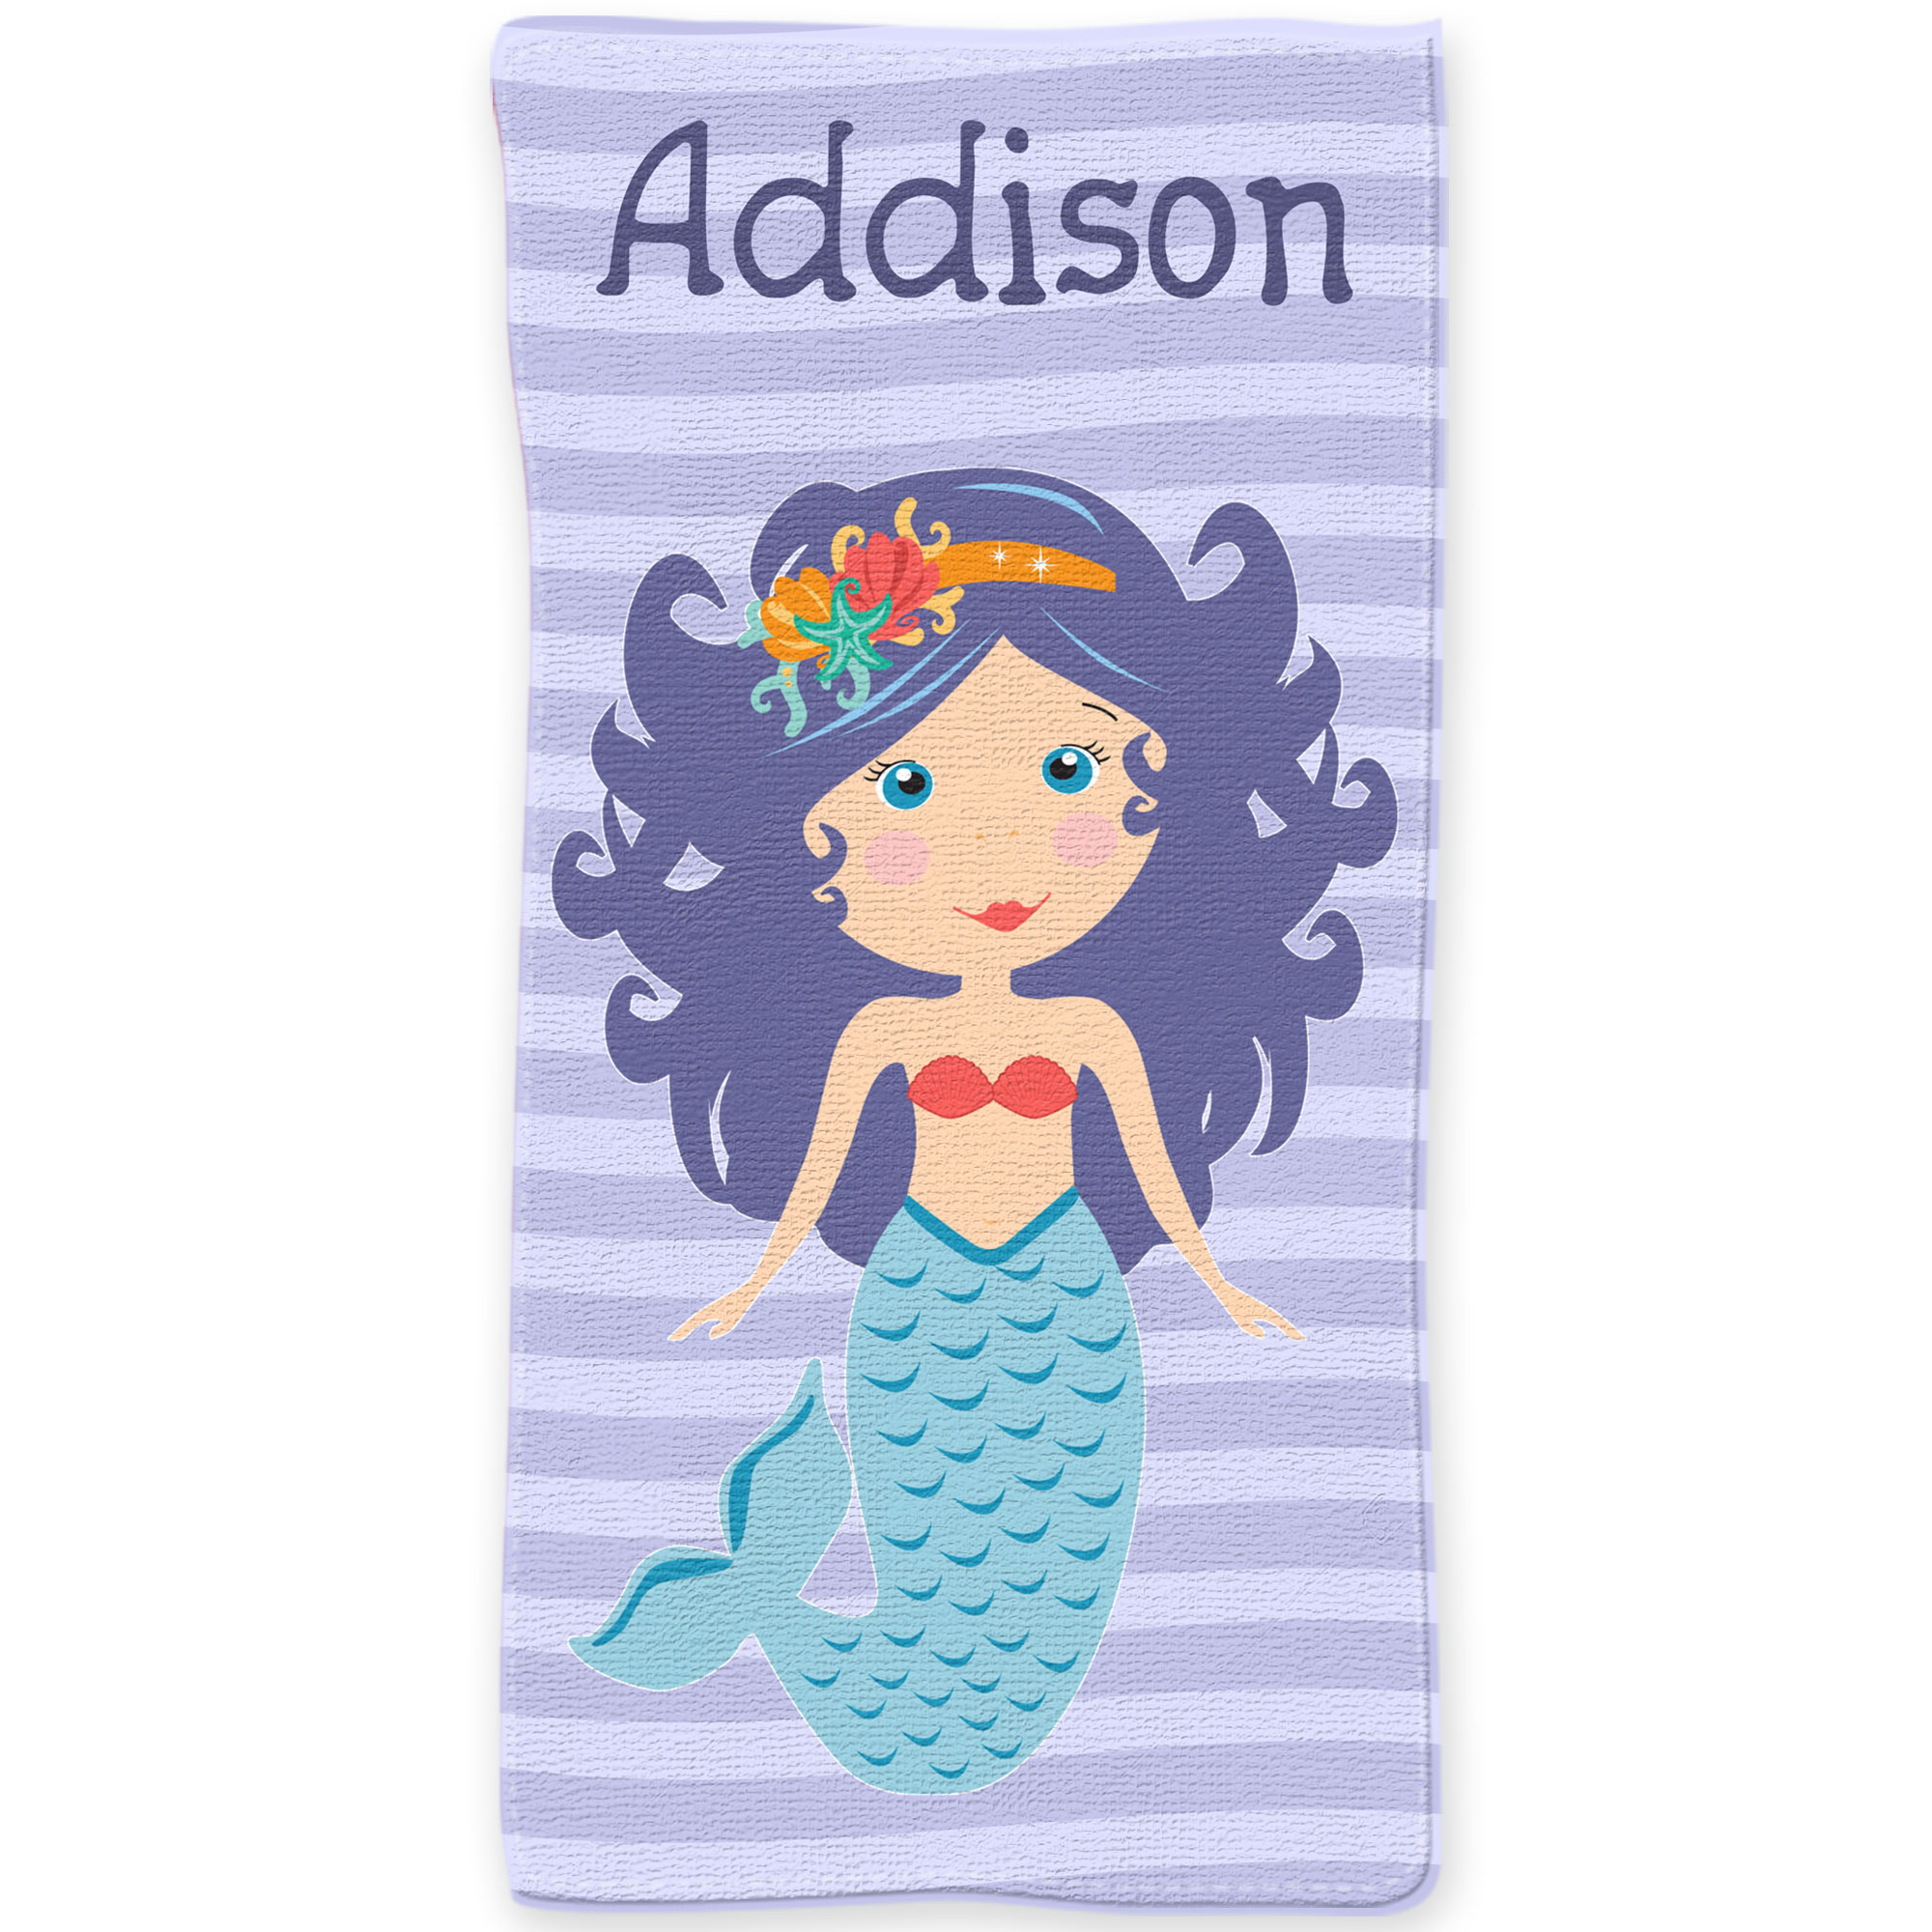 Personalized Beach Towel For Toddler: Mermaid Personalized Beach Towel